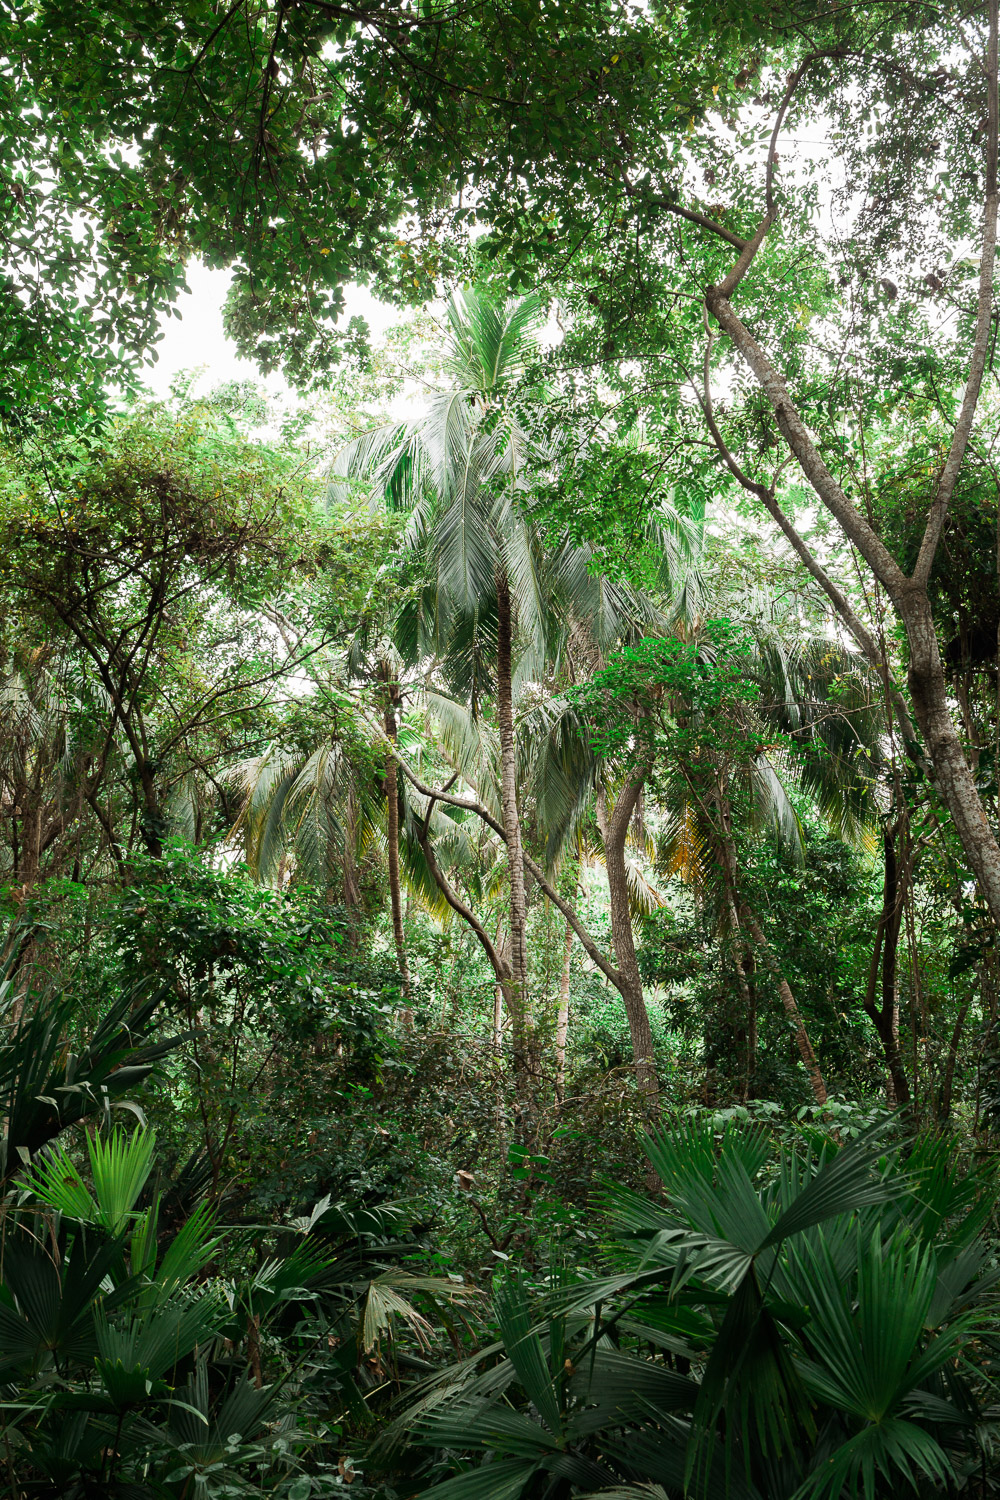 jungle-plants-Tayrona-National-Park